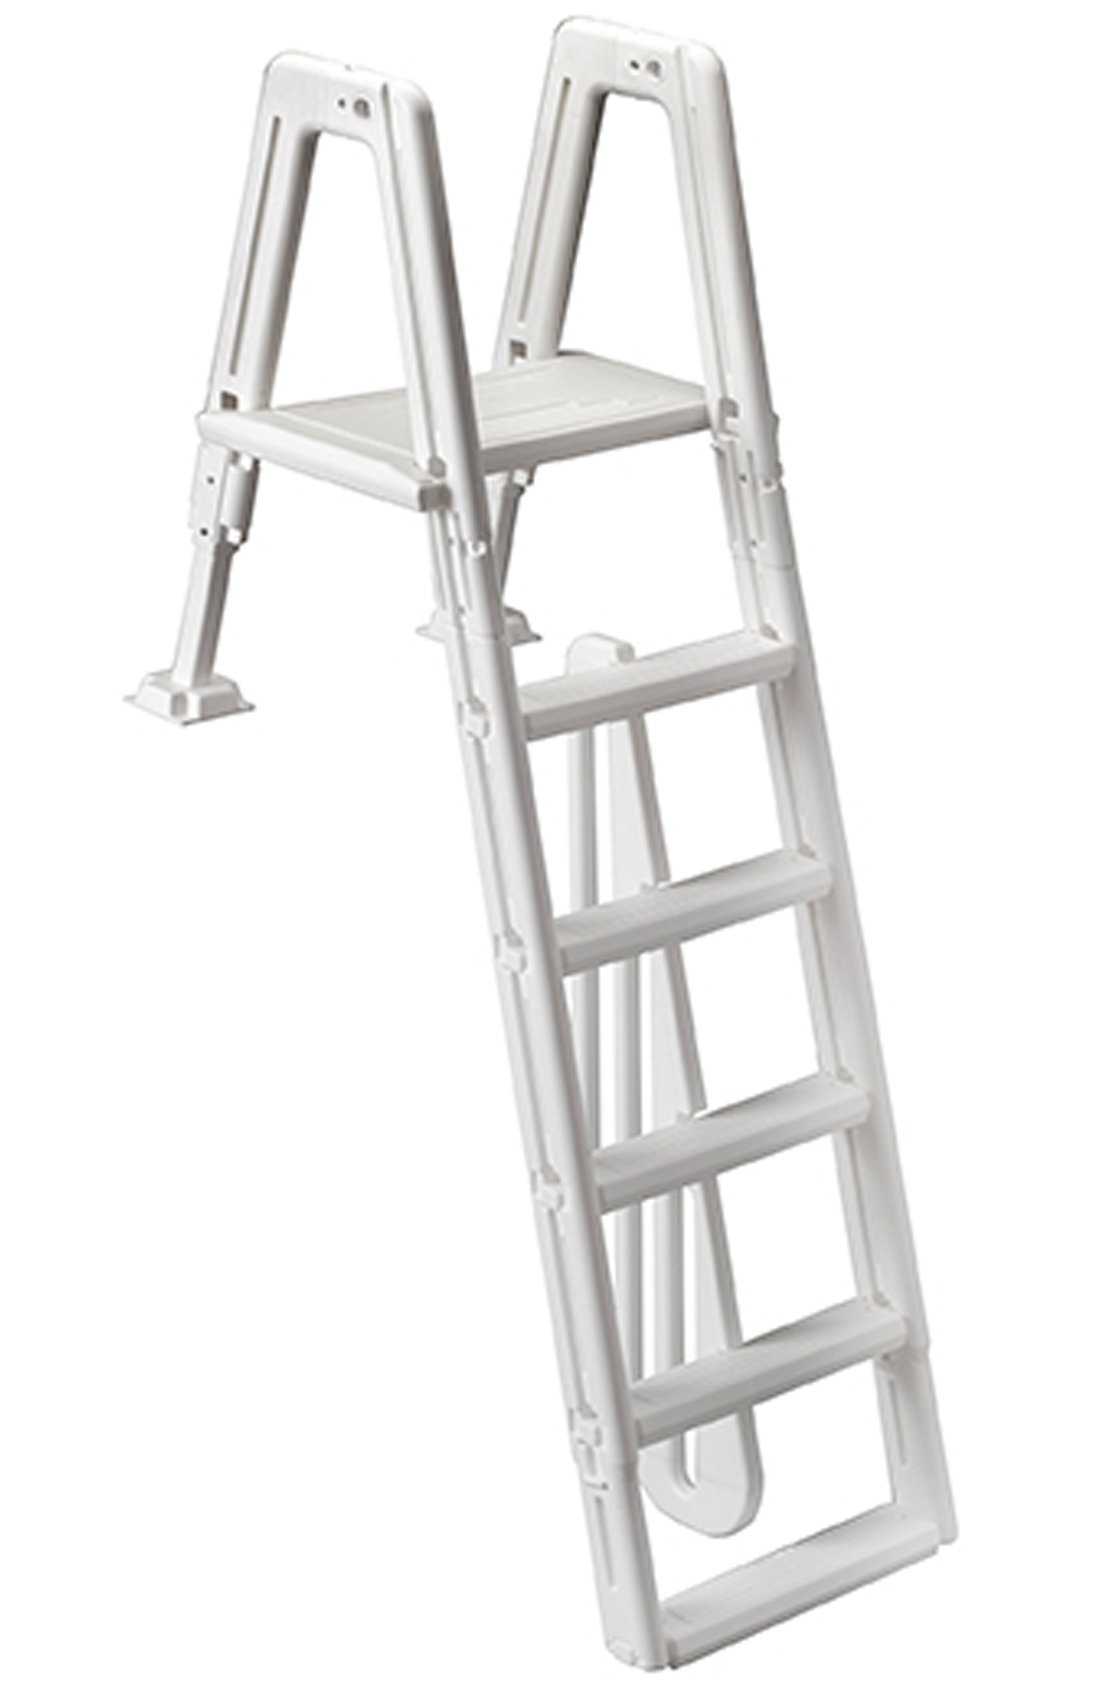 Ocean blue 400900 above ground swimming pool safety ladder Swimming pool ladders for above ground pools